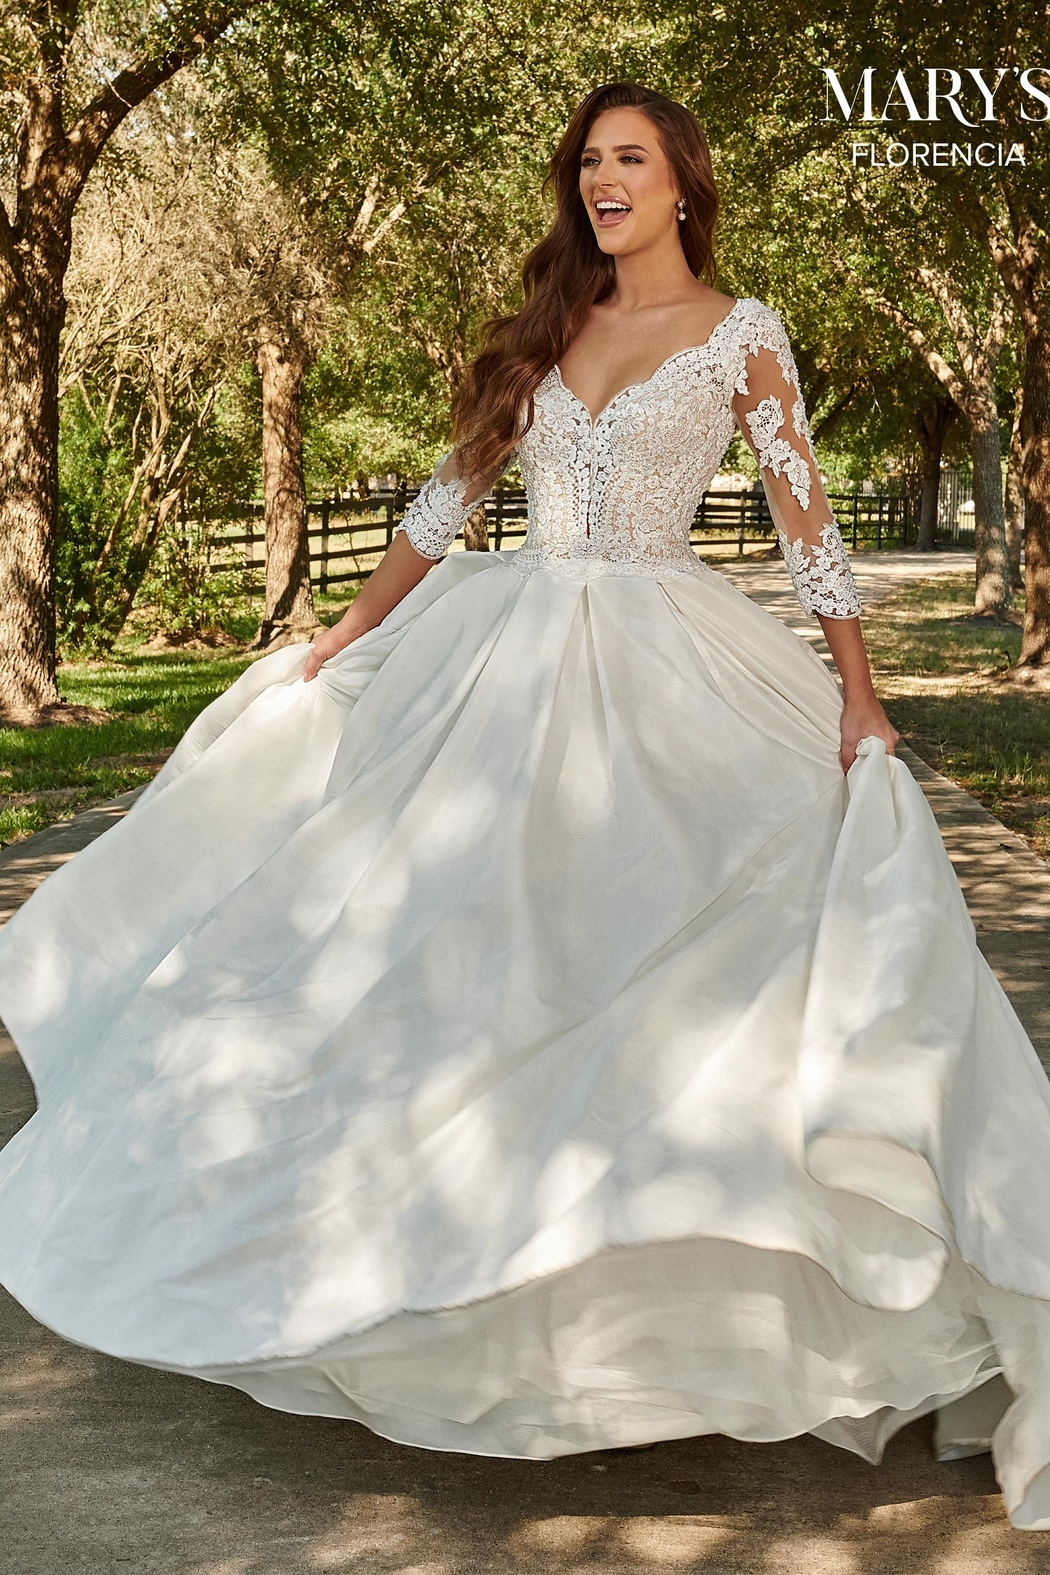 Mary's Bridal Florencia Bridal Gown in Ivory - Side Cropped Image